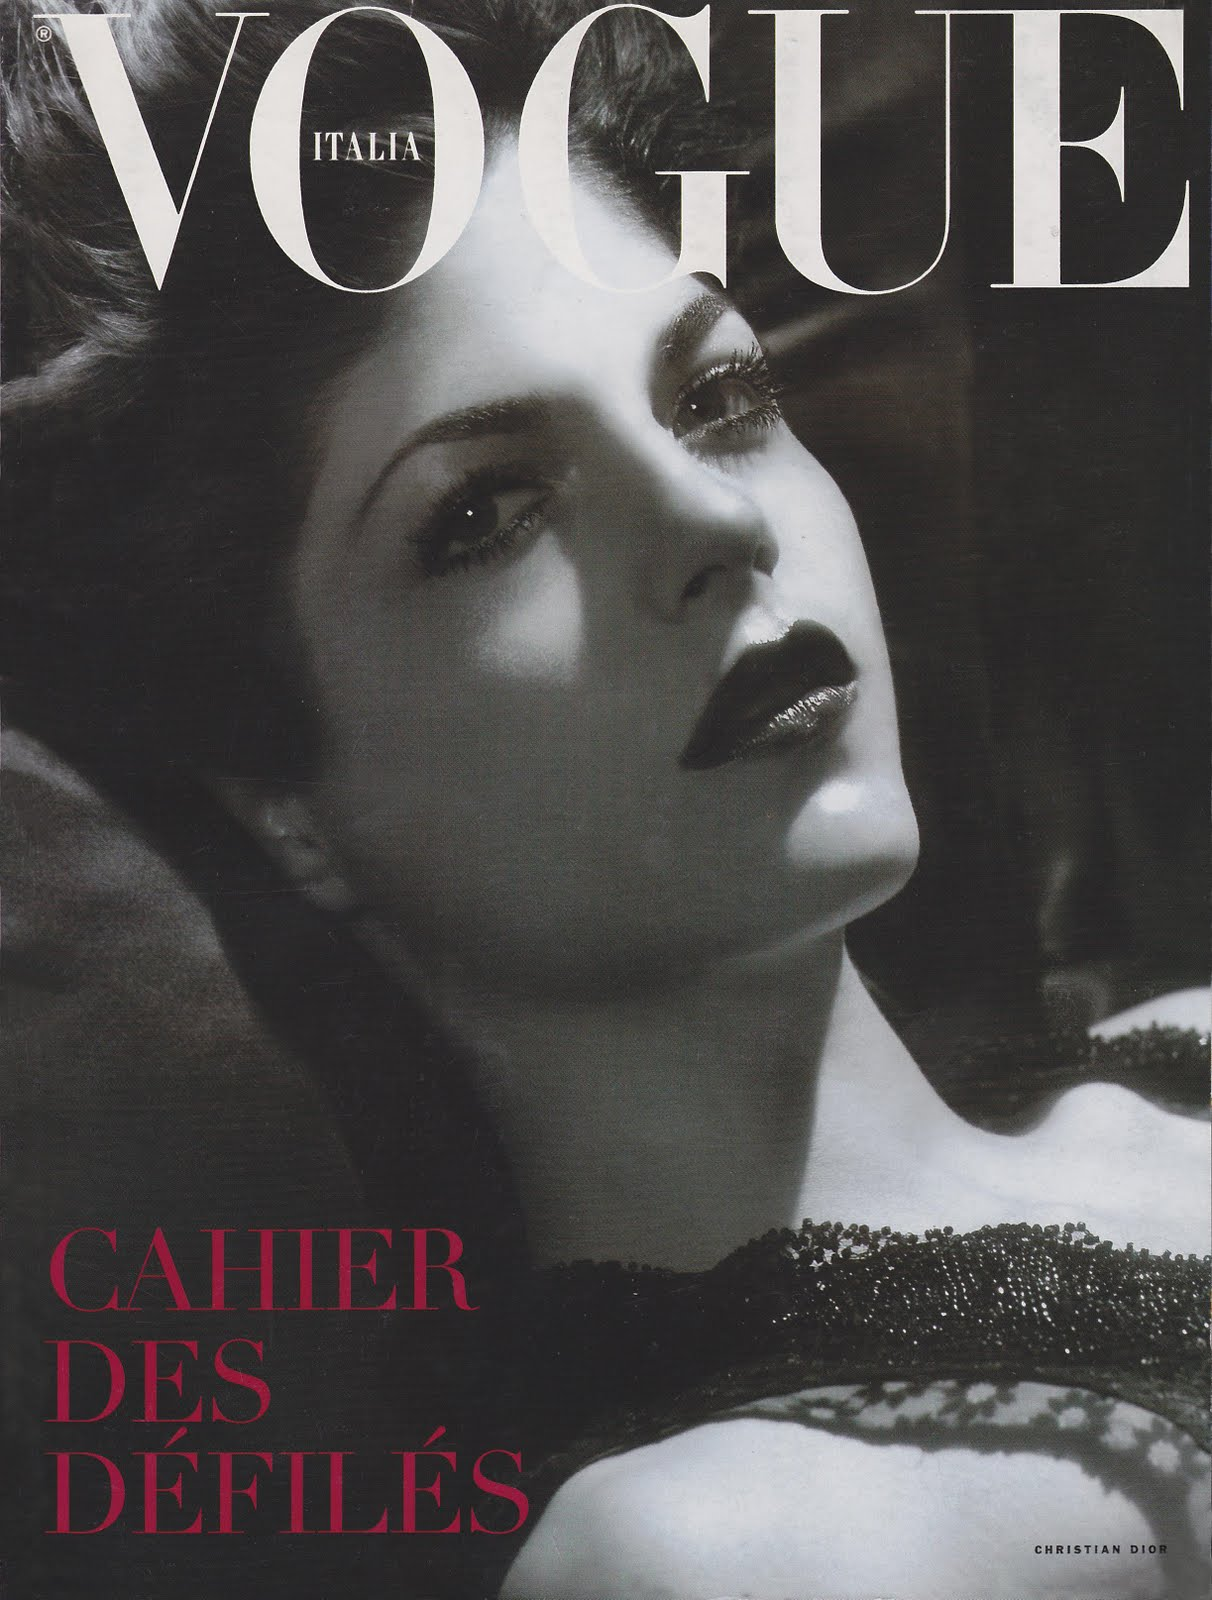 Vogue The Top Selling Fashion Magazine: The Christopher Sabino Project: May 2010